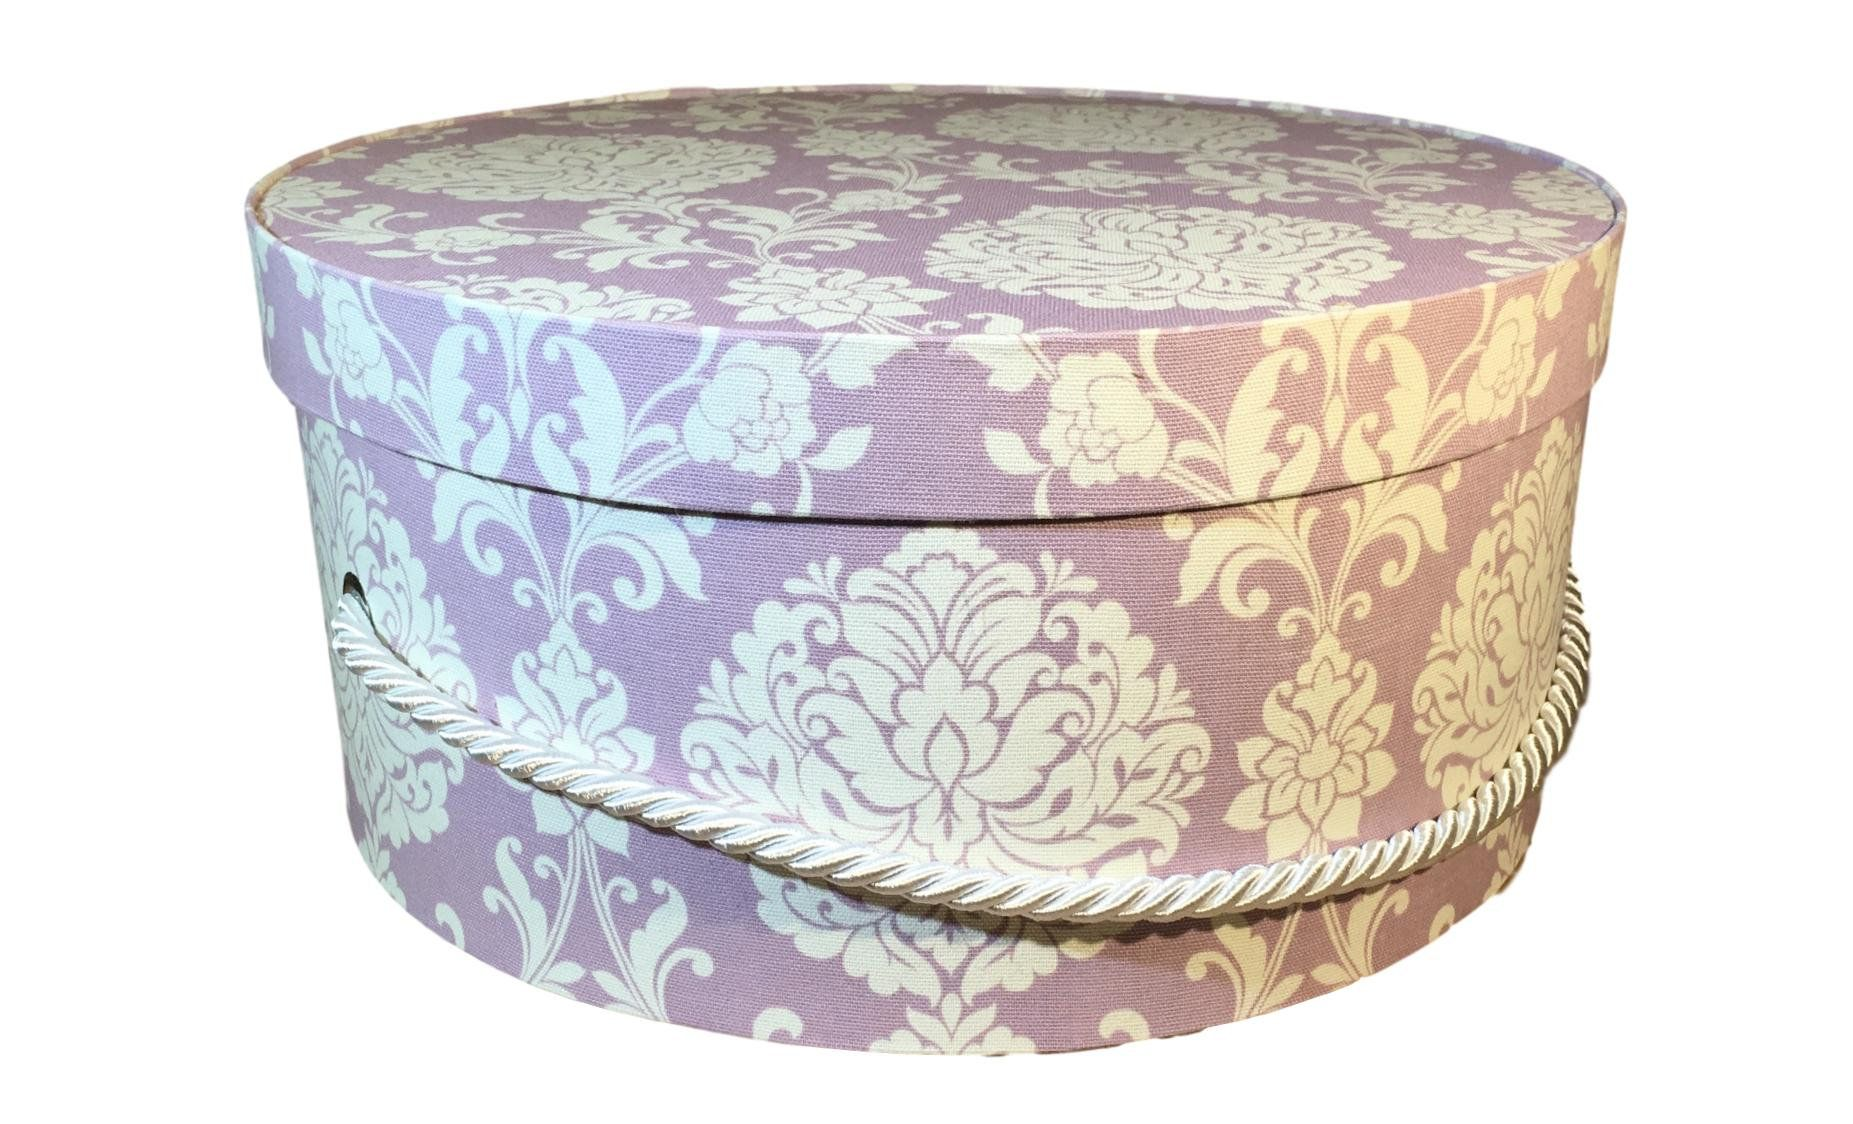 Hat Box In Purple And White Damask Large Decorative Fabric Covered Hat Boxes Round Storage Box Keepsake Boxes With Lid Fabric Decor Hat Boxes White Damask